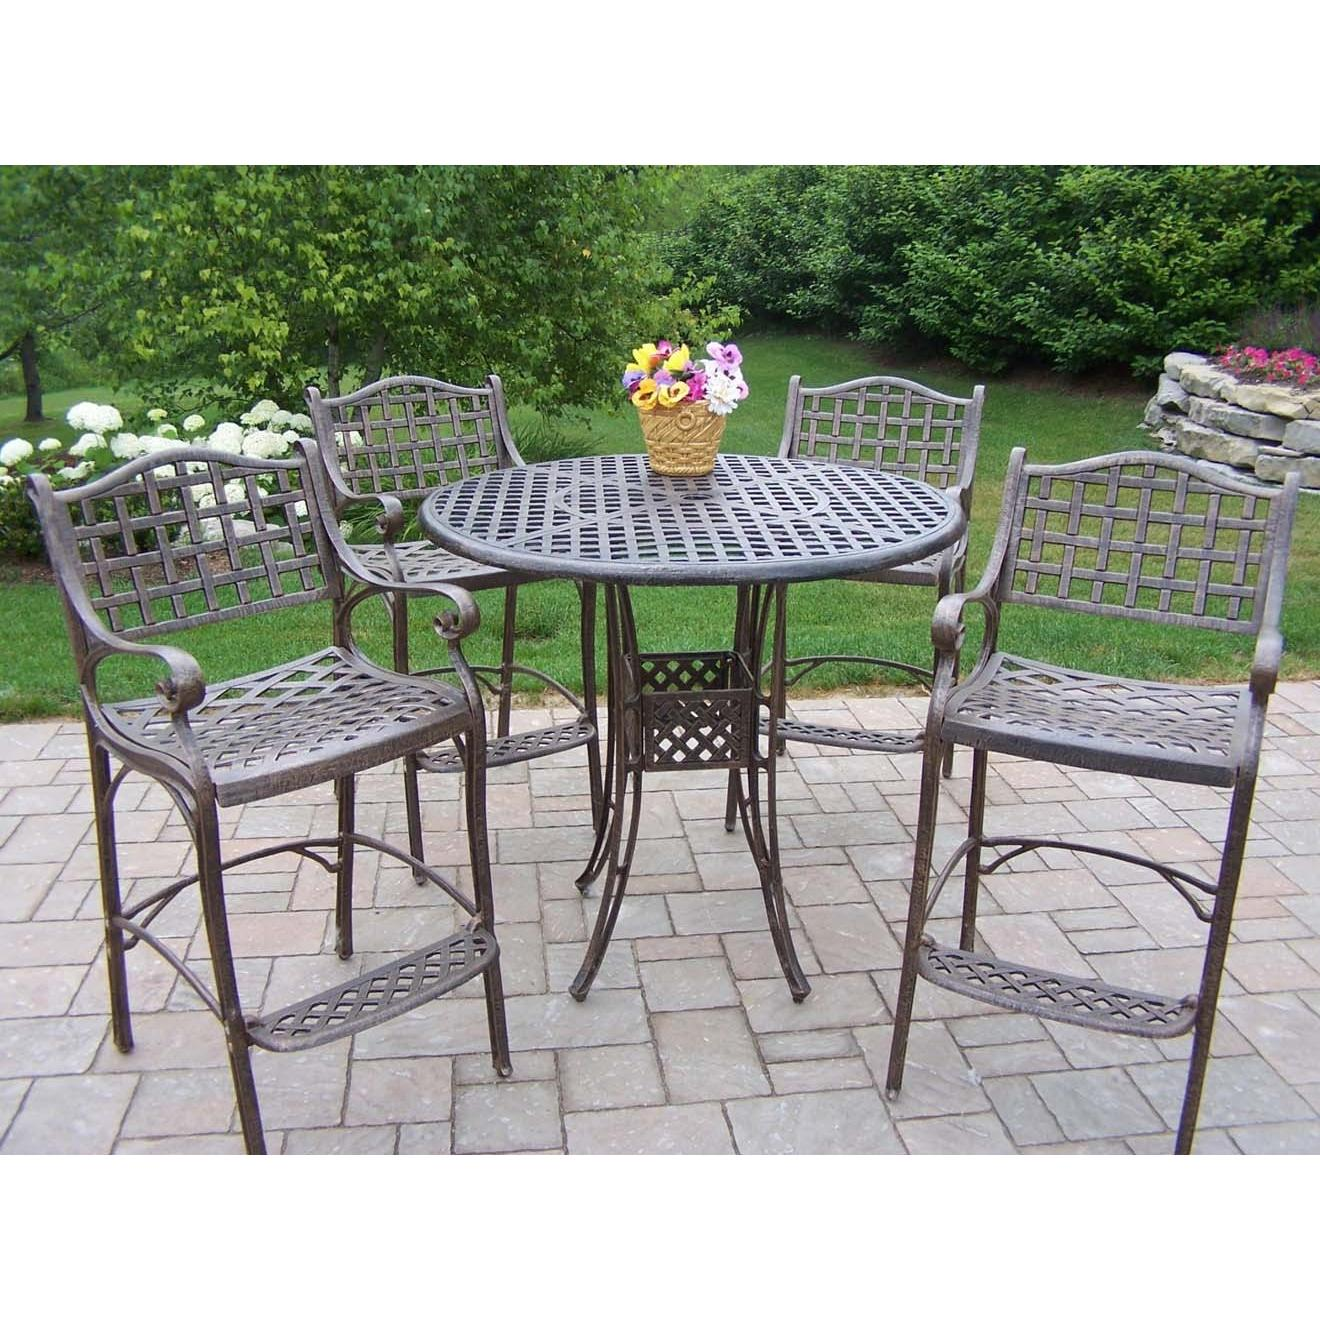 Practical Patio Bar And Counter Height Sets Online Discount Page 1 Family